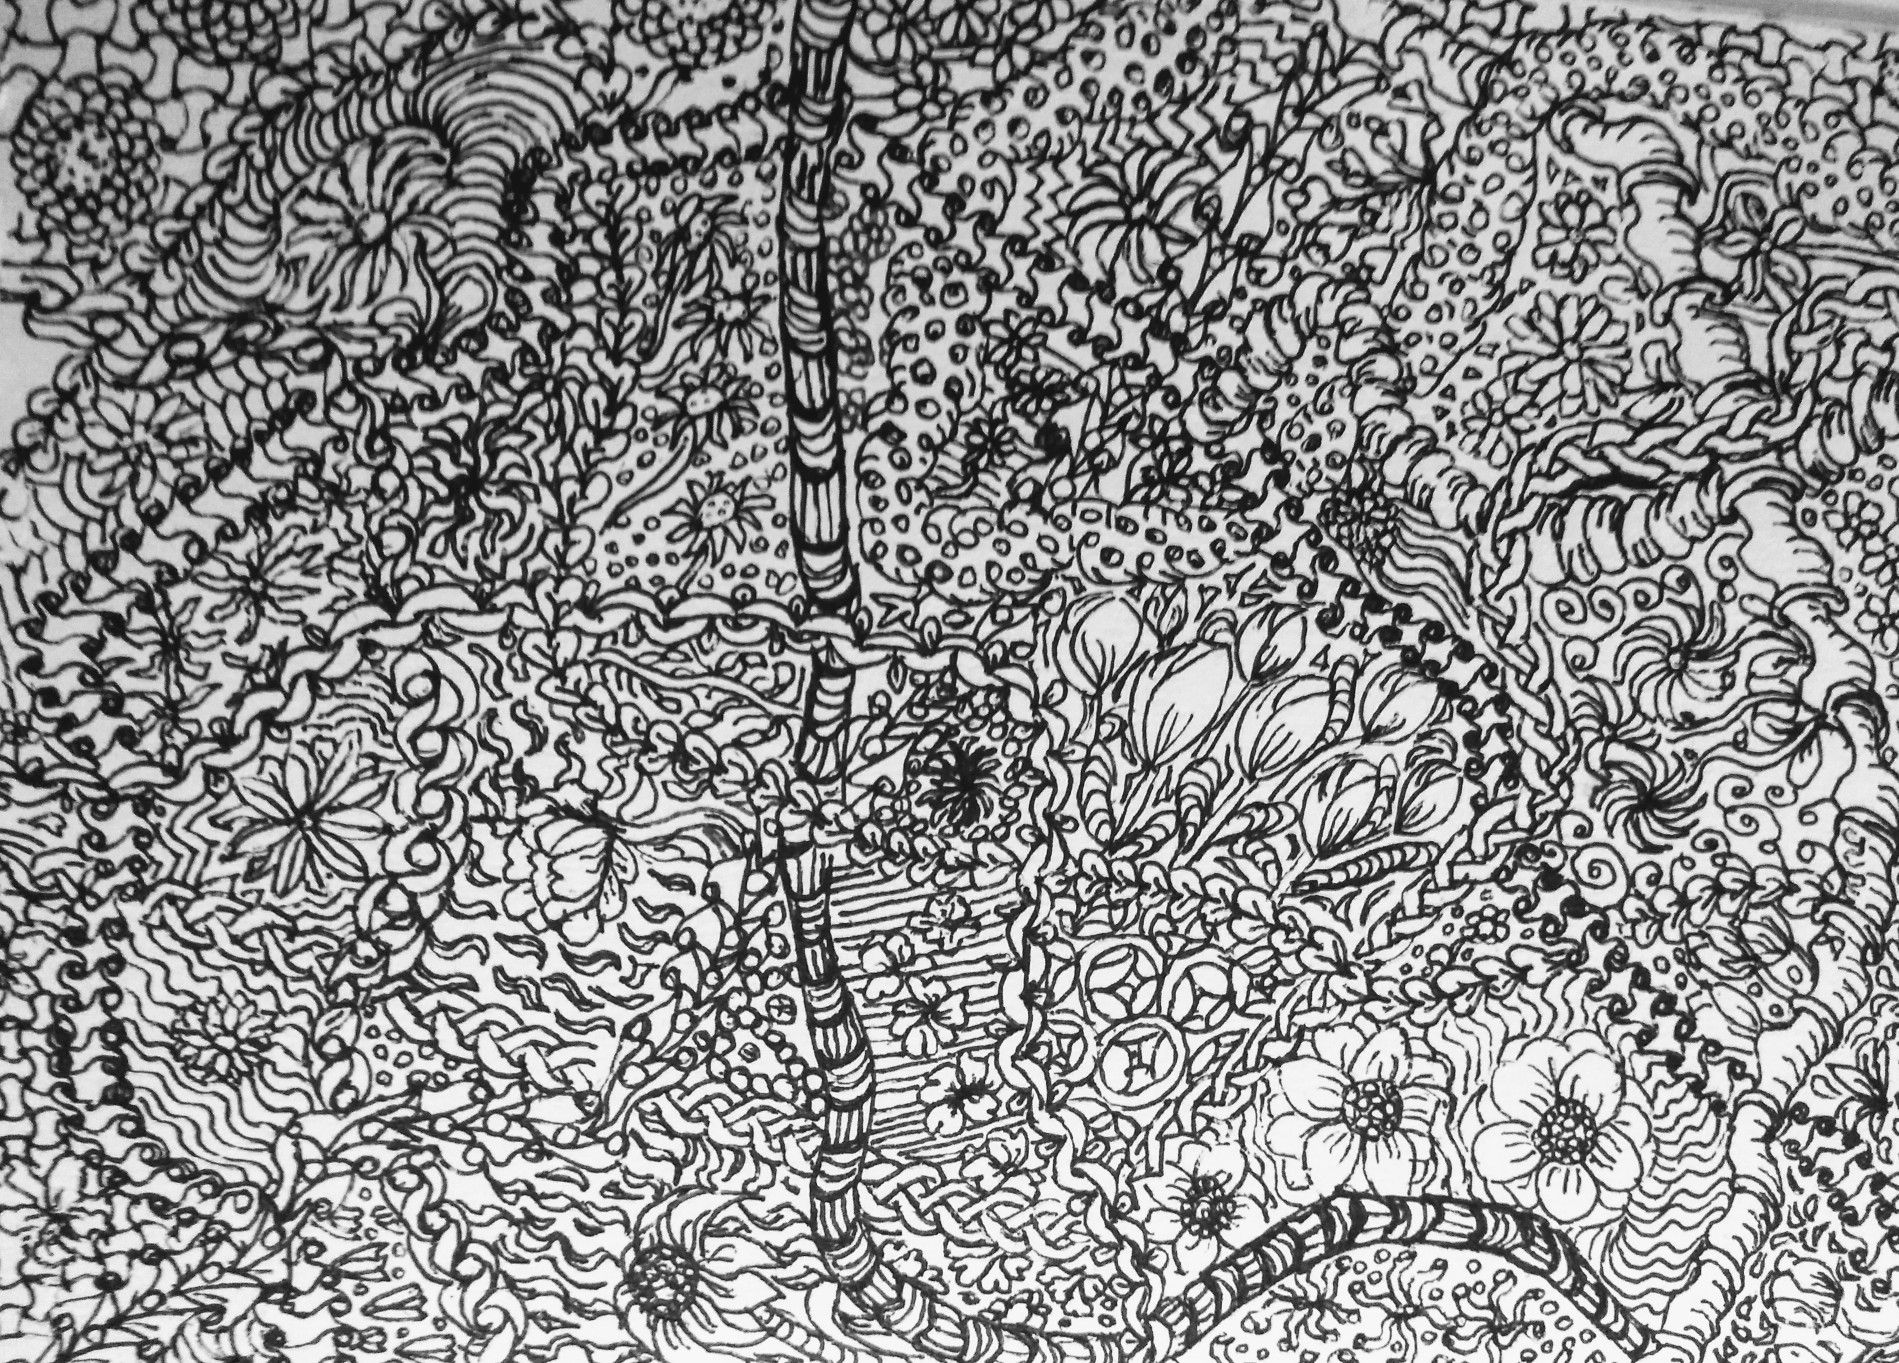 Pin By Judith Been On My Doodling Zentangle City Photo Aerial